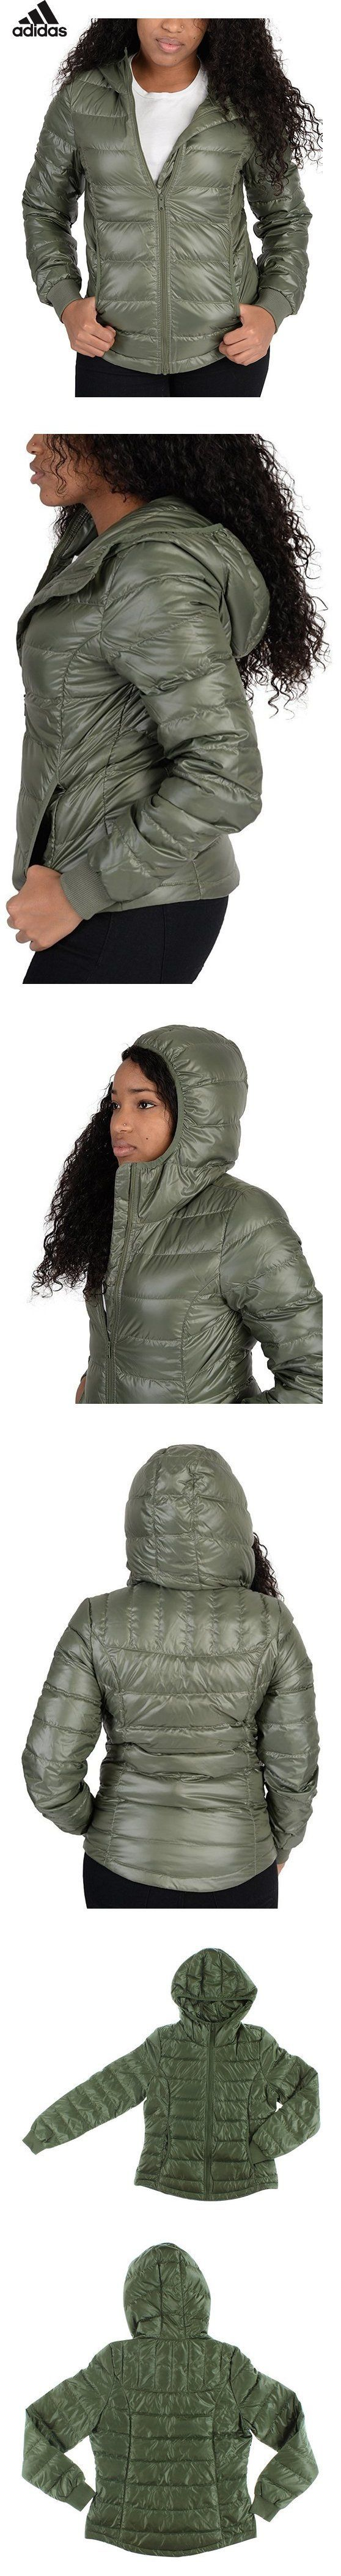 $74.94 - Adidas Womens Utility Low Down Jacket Olive Green L